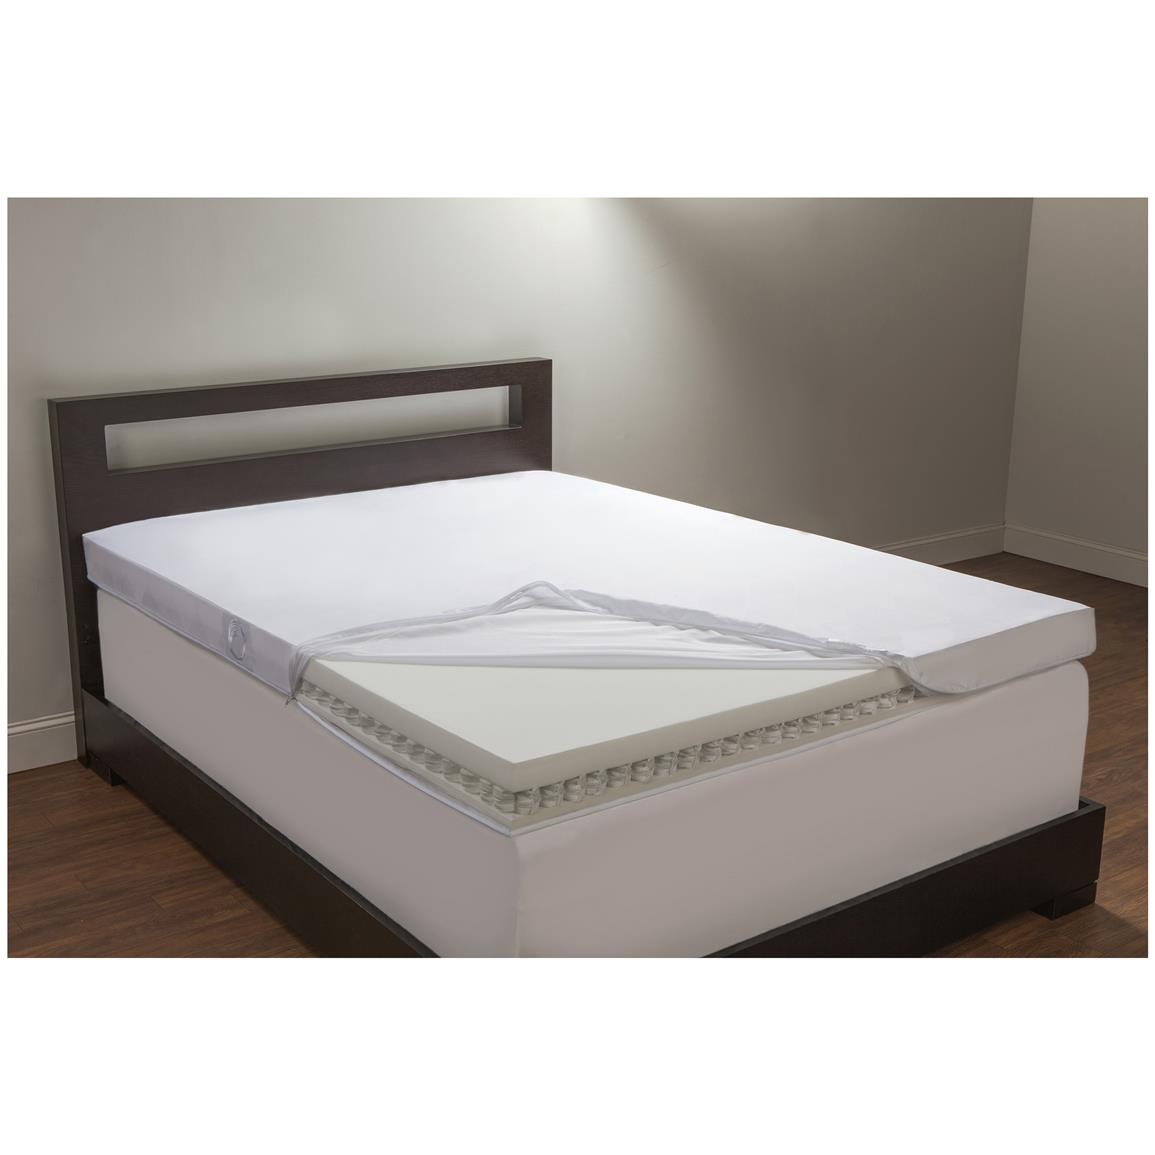 Comfort Revolution King 4 Spring Coil And Foam Topper 623593 Mattress Toppers At Sportsman